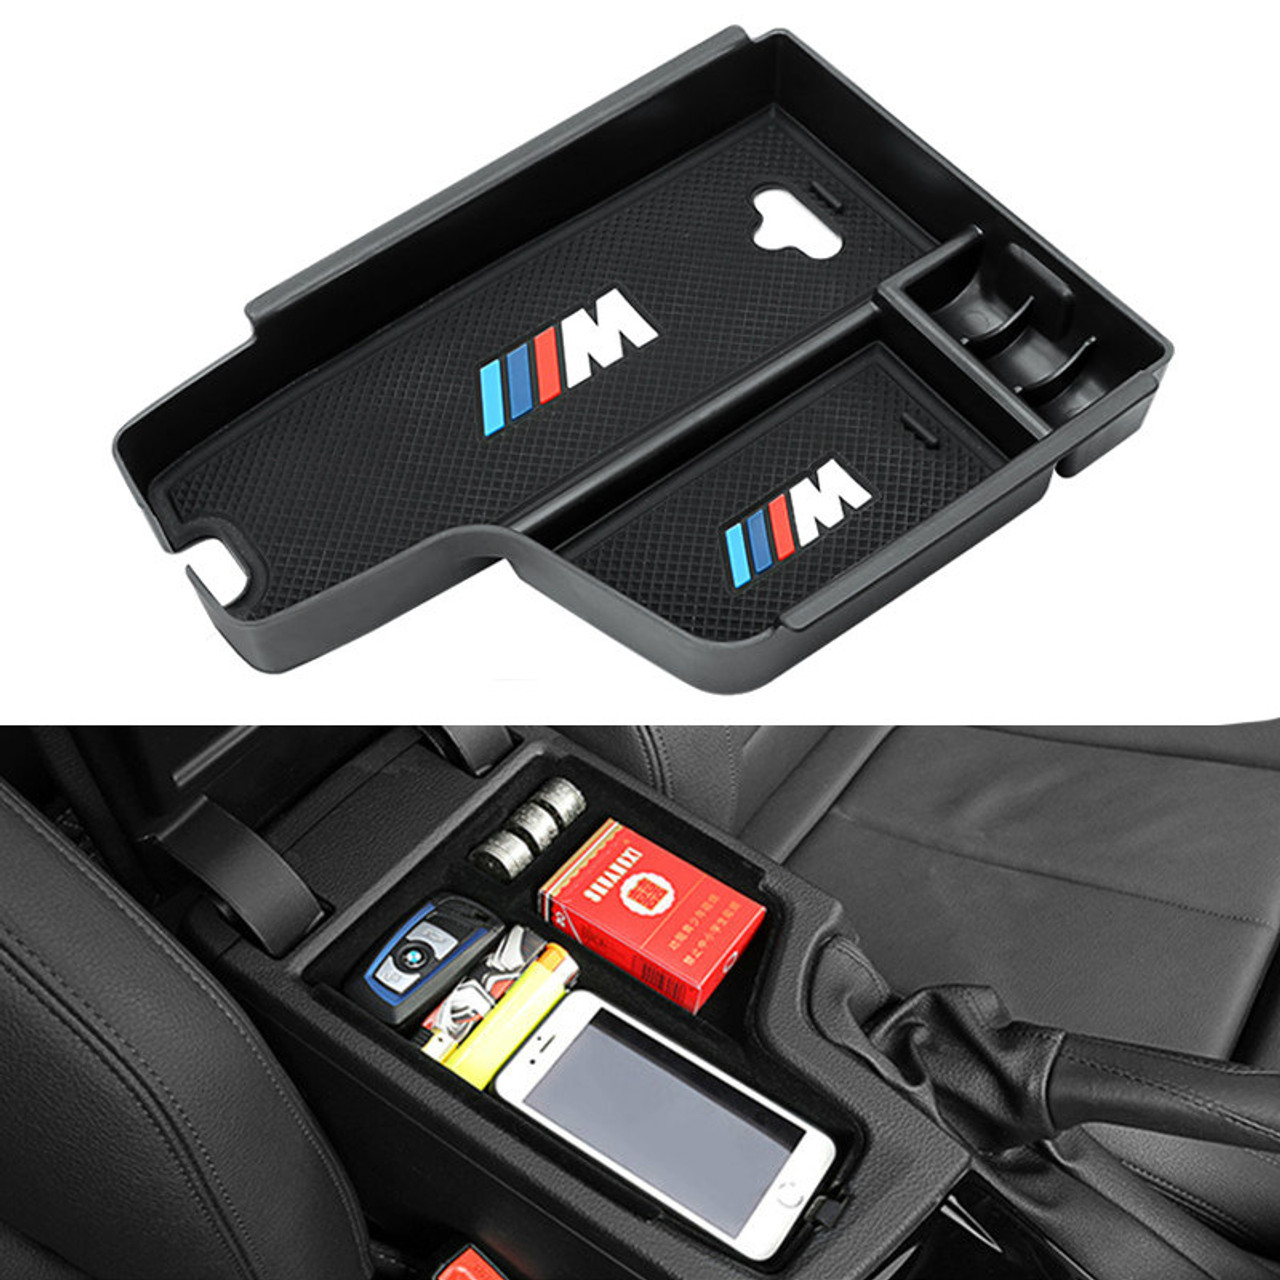 Buy Bmw Car Styling M Logo Center Console Armrest Box Storage For Bmw F30 F31 320i 325i F32 High Quality Trusted Automotive Car Spare Parts And Accessories Cool Gadgets Badges Logo From